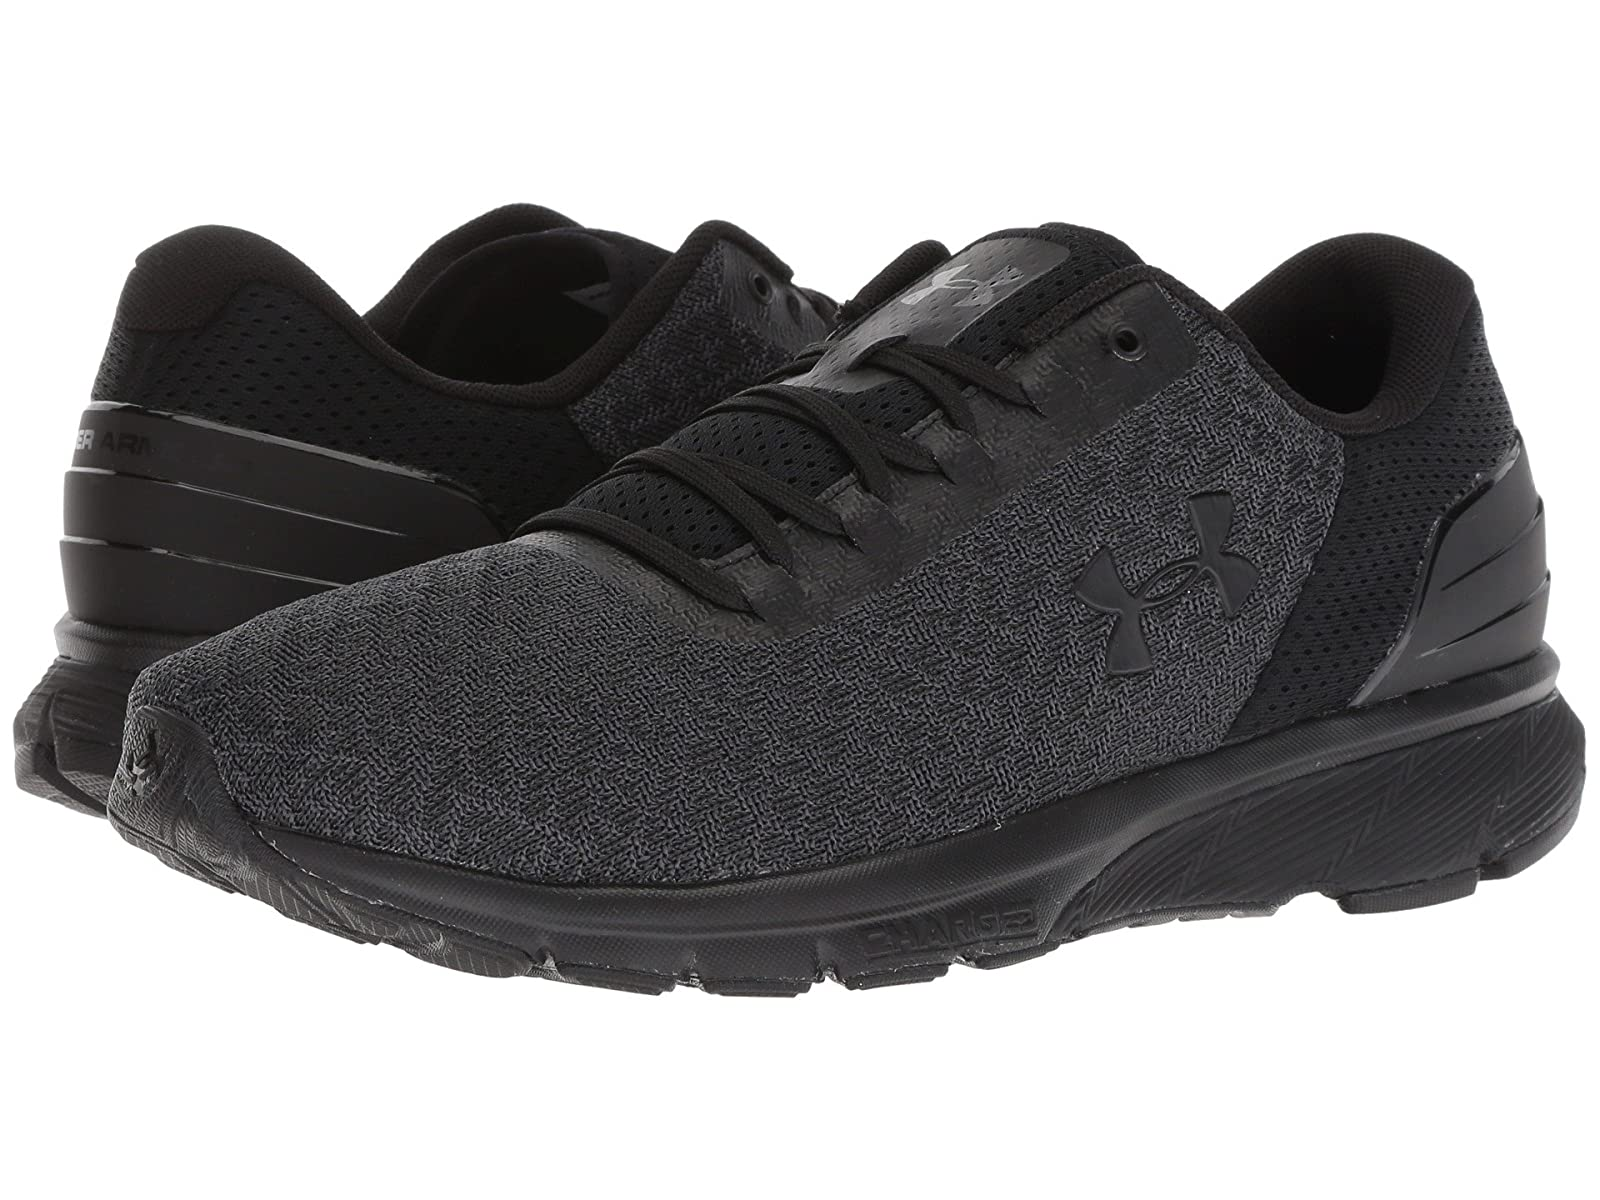 Under Armour UA Charged Escape 2Atmospheric grades have affordable shoes